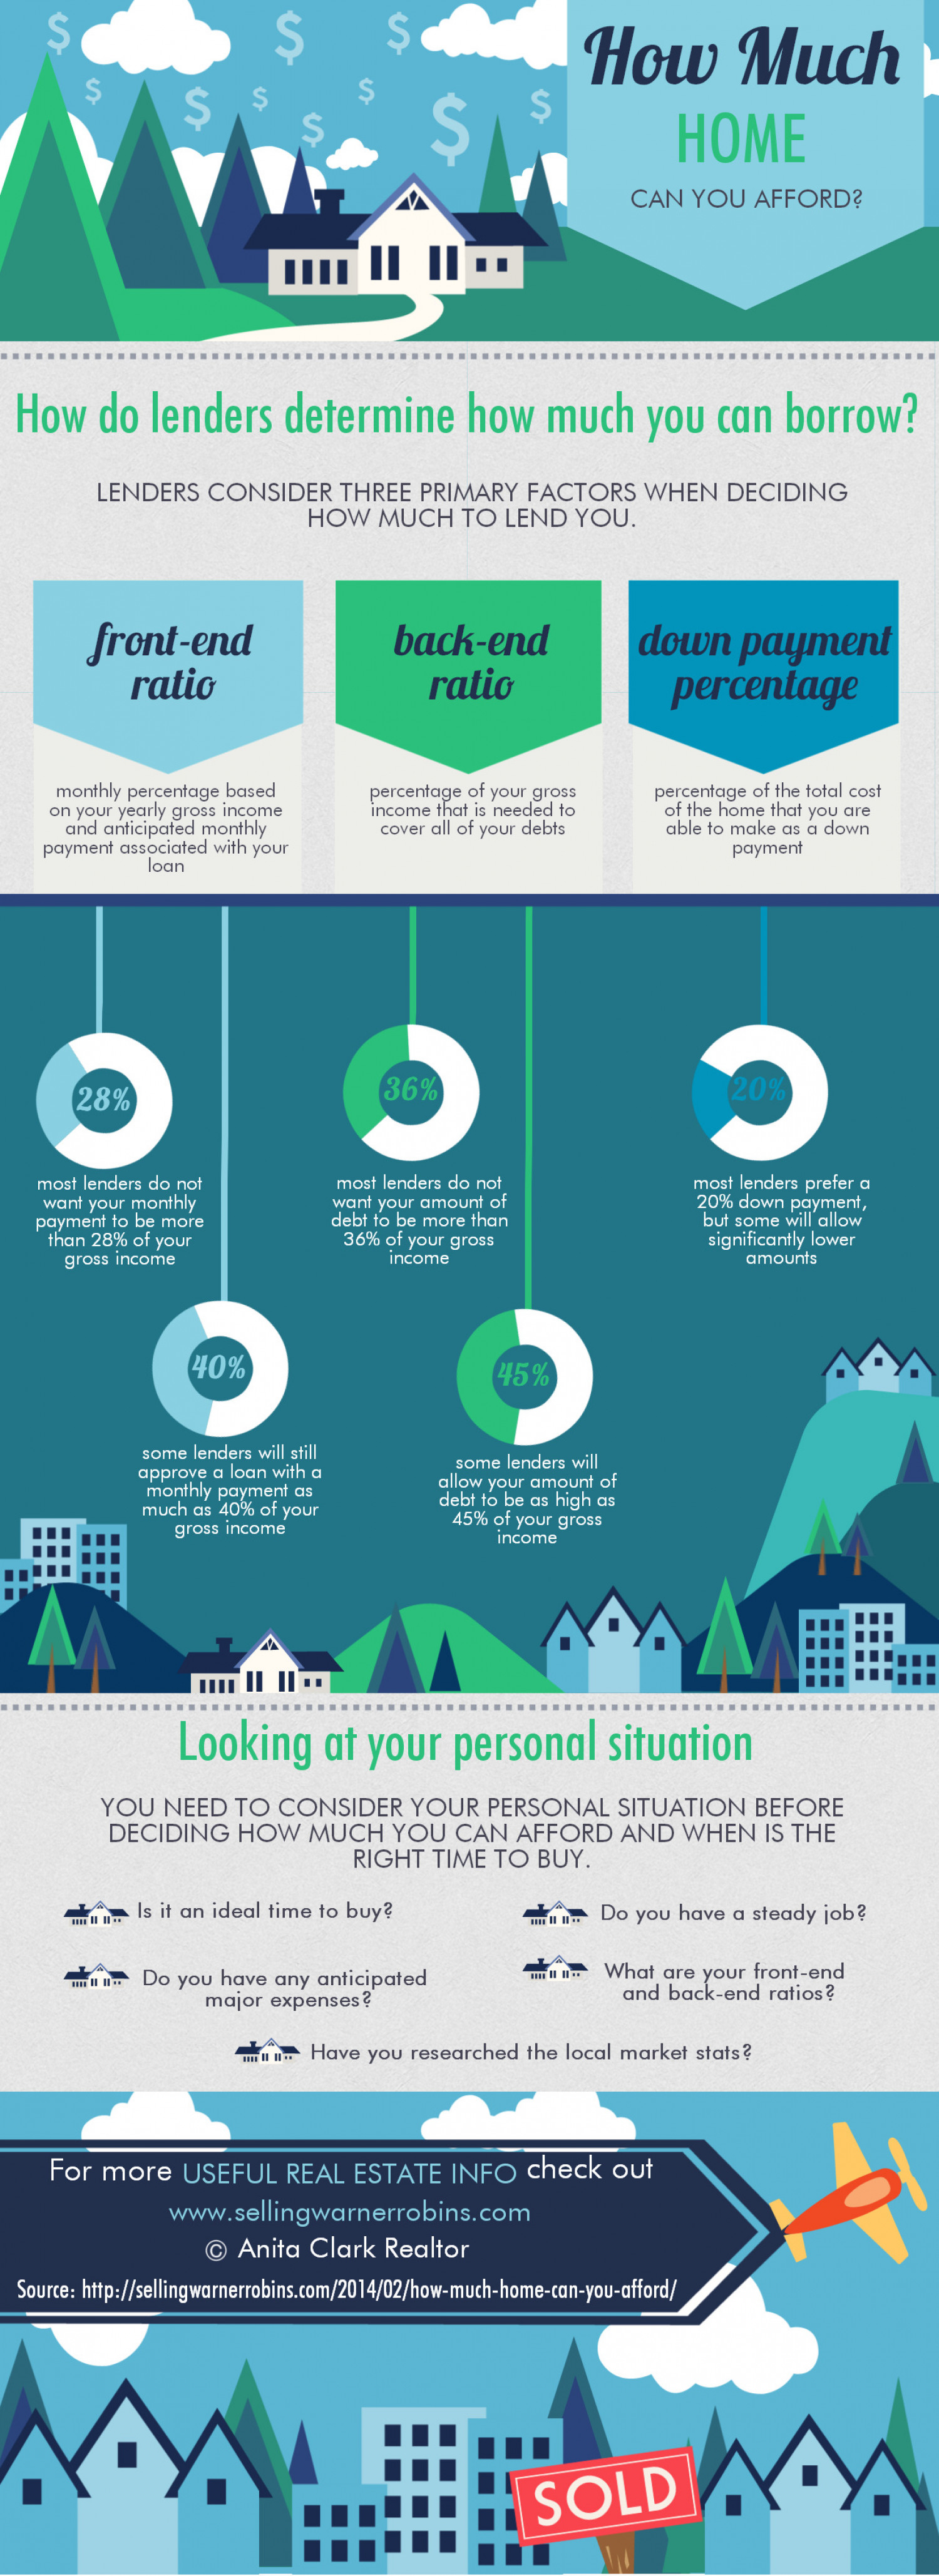 How Much Home Can You Afford? Infographic